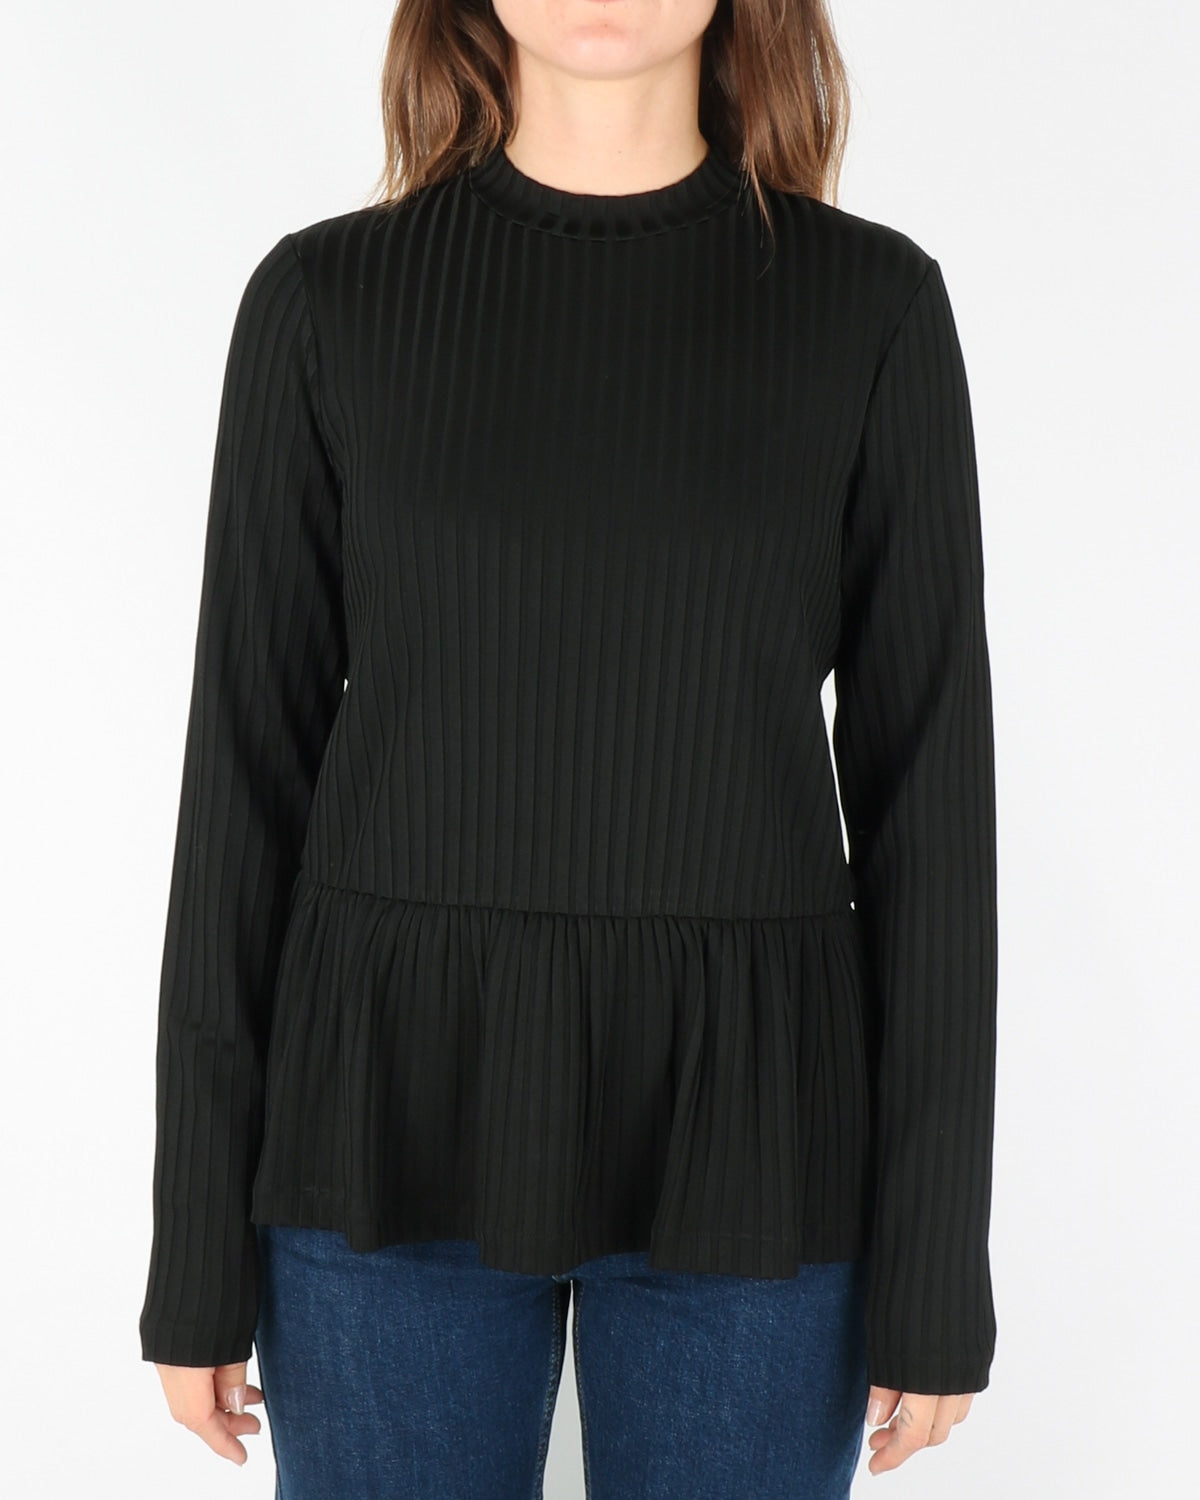 libertine libertine_focus blouse_black_3_3